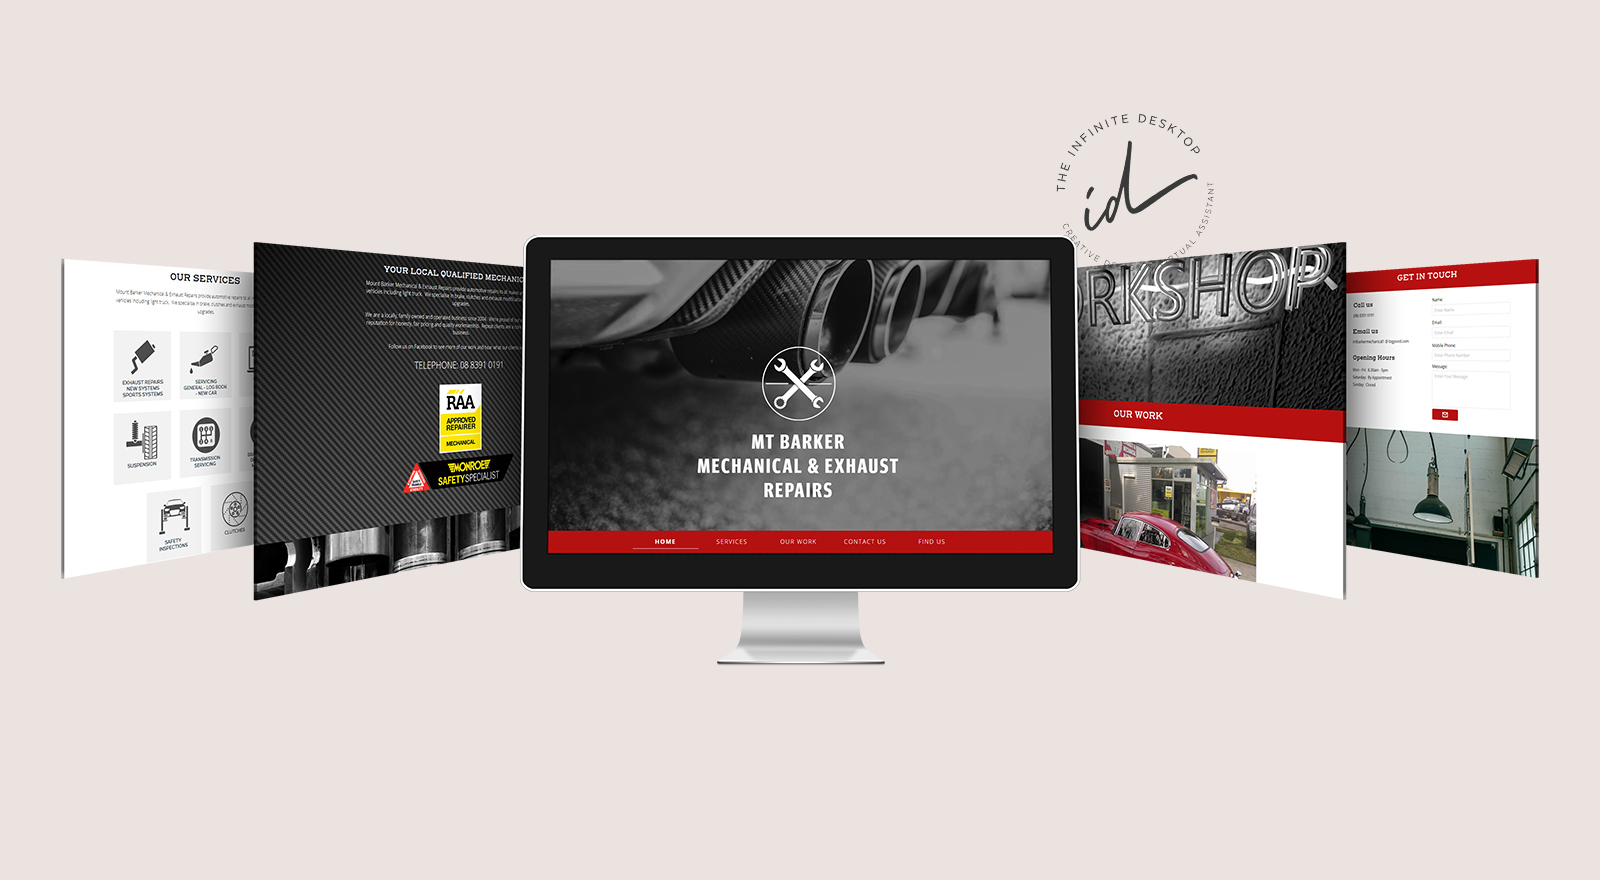 New website for Mt Barker Mechancial